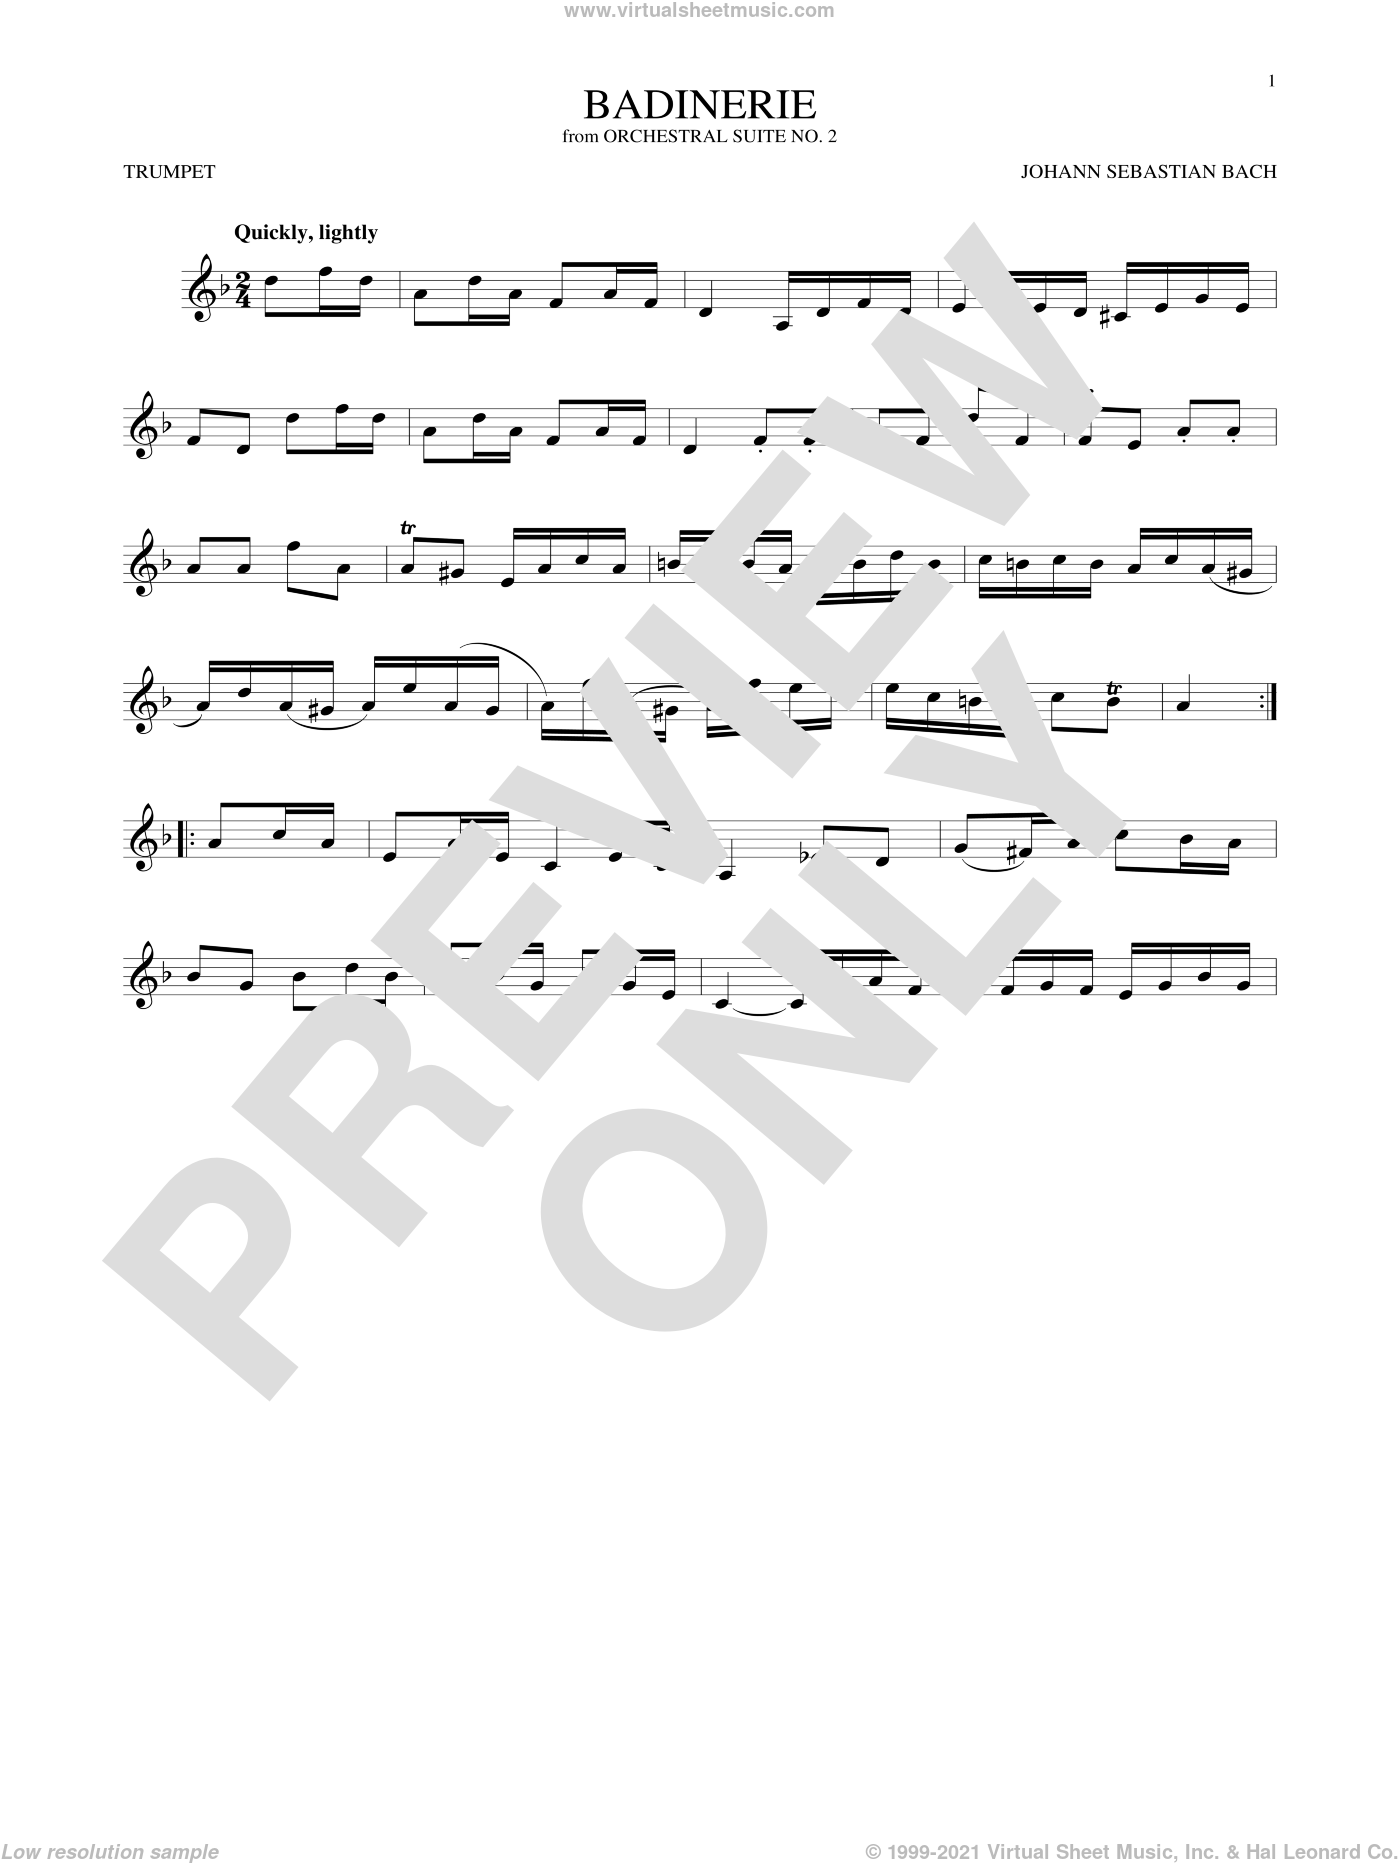 Bach - Badinerie (Suite No  2) sheet music for trumpet solo [PDF]